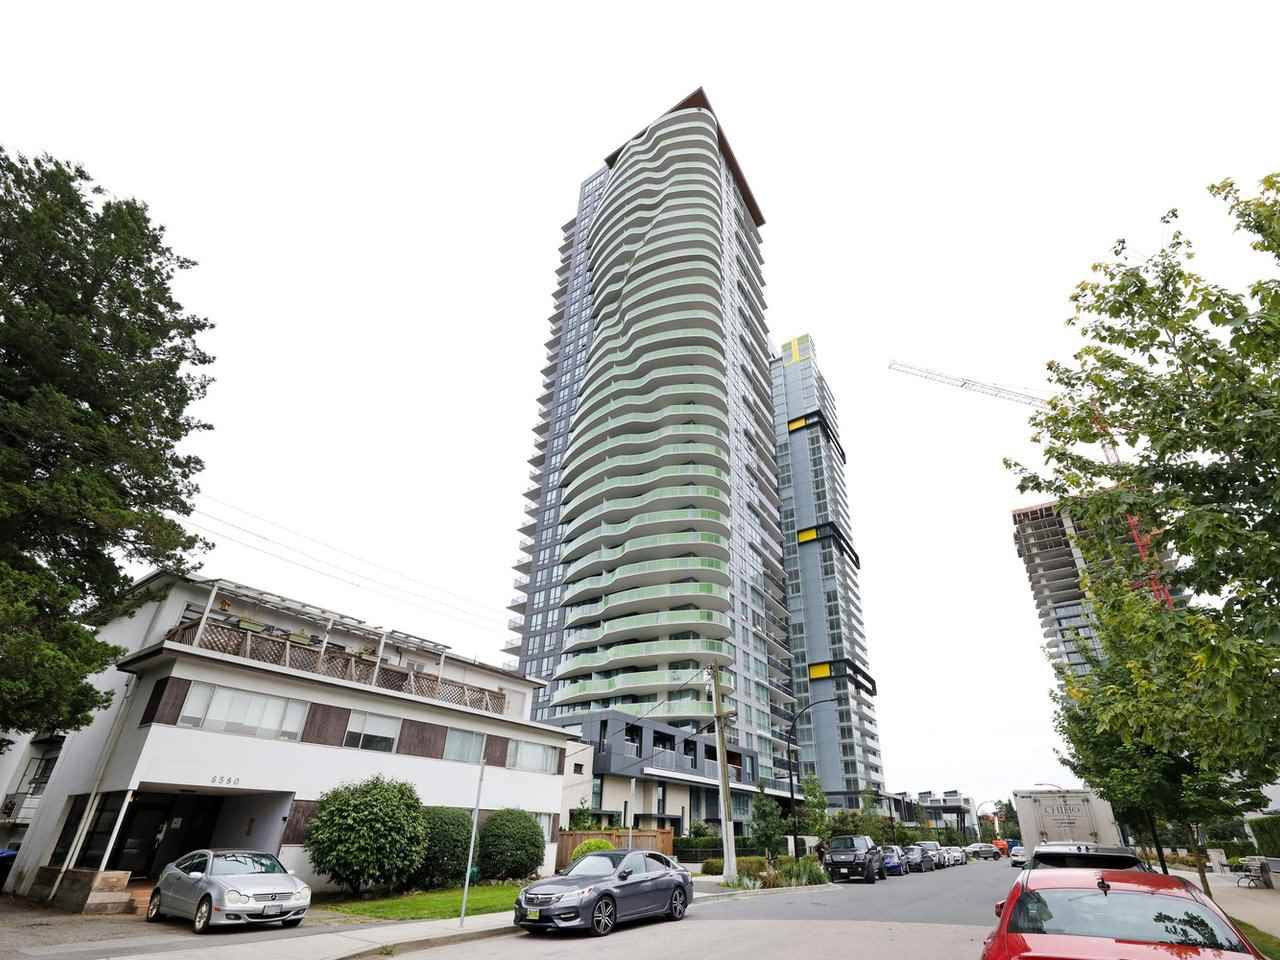 """Main Photo: 3008 6638 DUNBLANE Avenue in Burnaby: Metrotown Condo for sale in """"Midori by Polygon"""" (Burnaby South)  : MLS®# R2496874"""